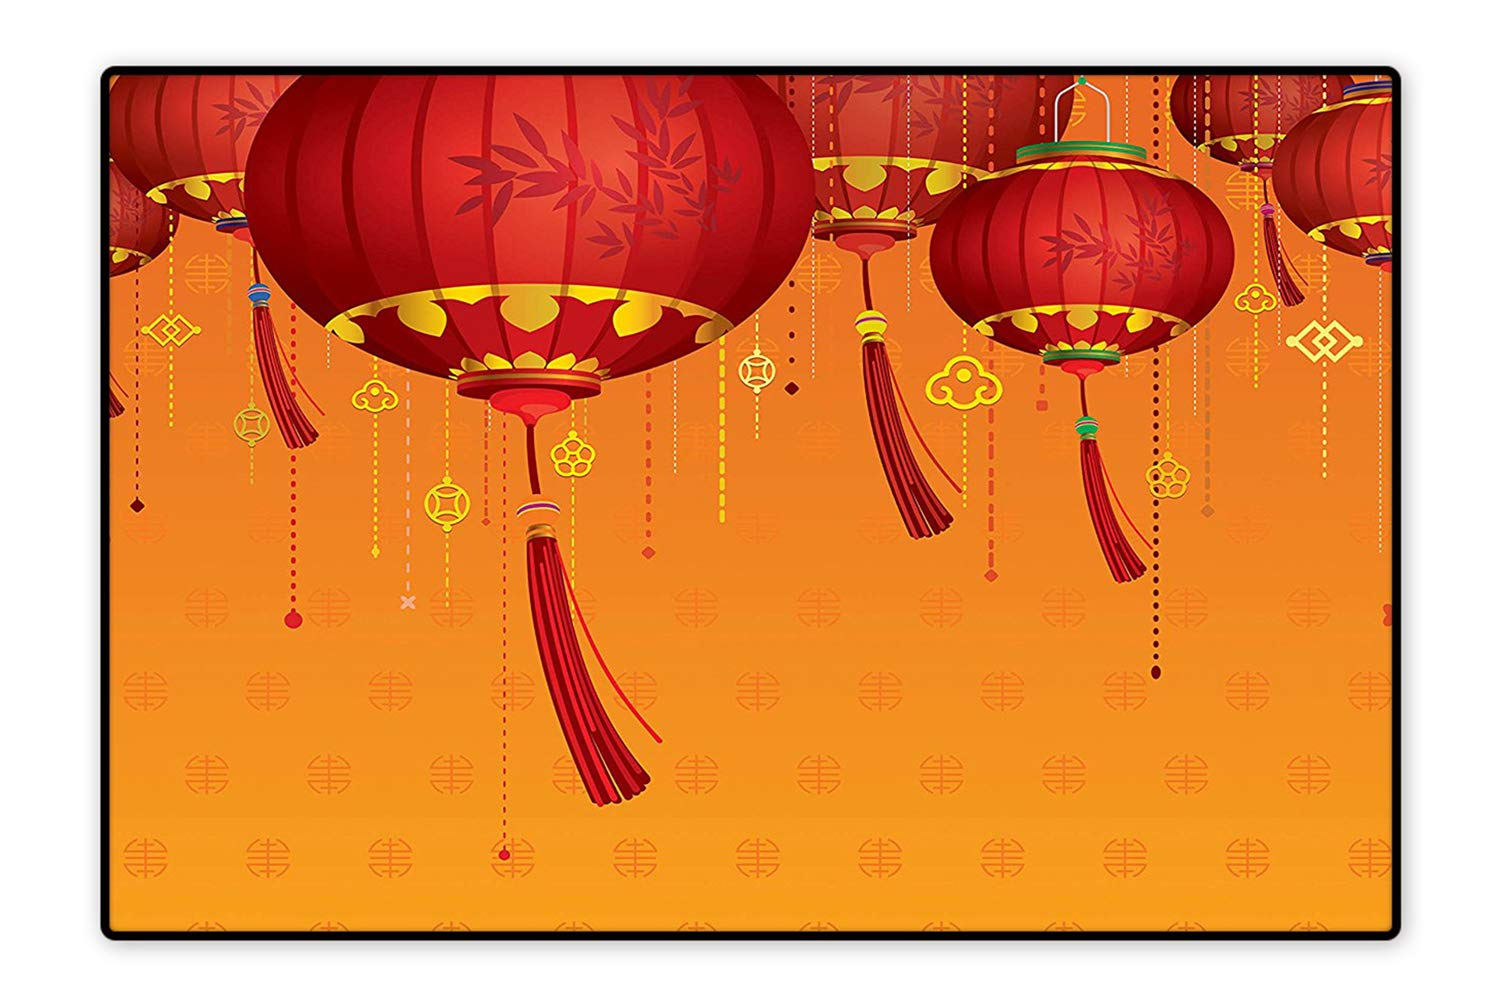 Amazon.com: Indoor/Outdoor Floor Mat Ative Chinese Lanterns Hang on The Air  New Year Asian Art Style Graphic Design Red Orange Easy Clean 6'x9':  Kitchen & ...